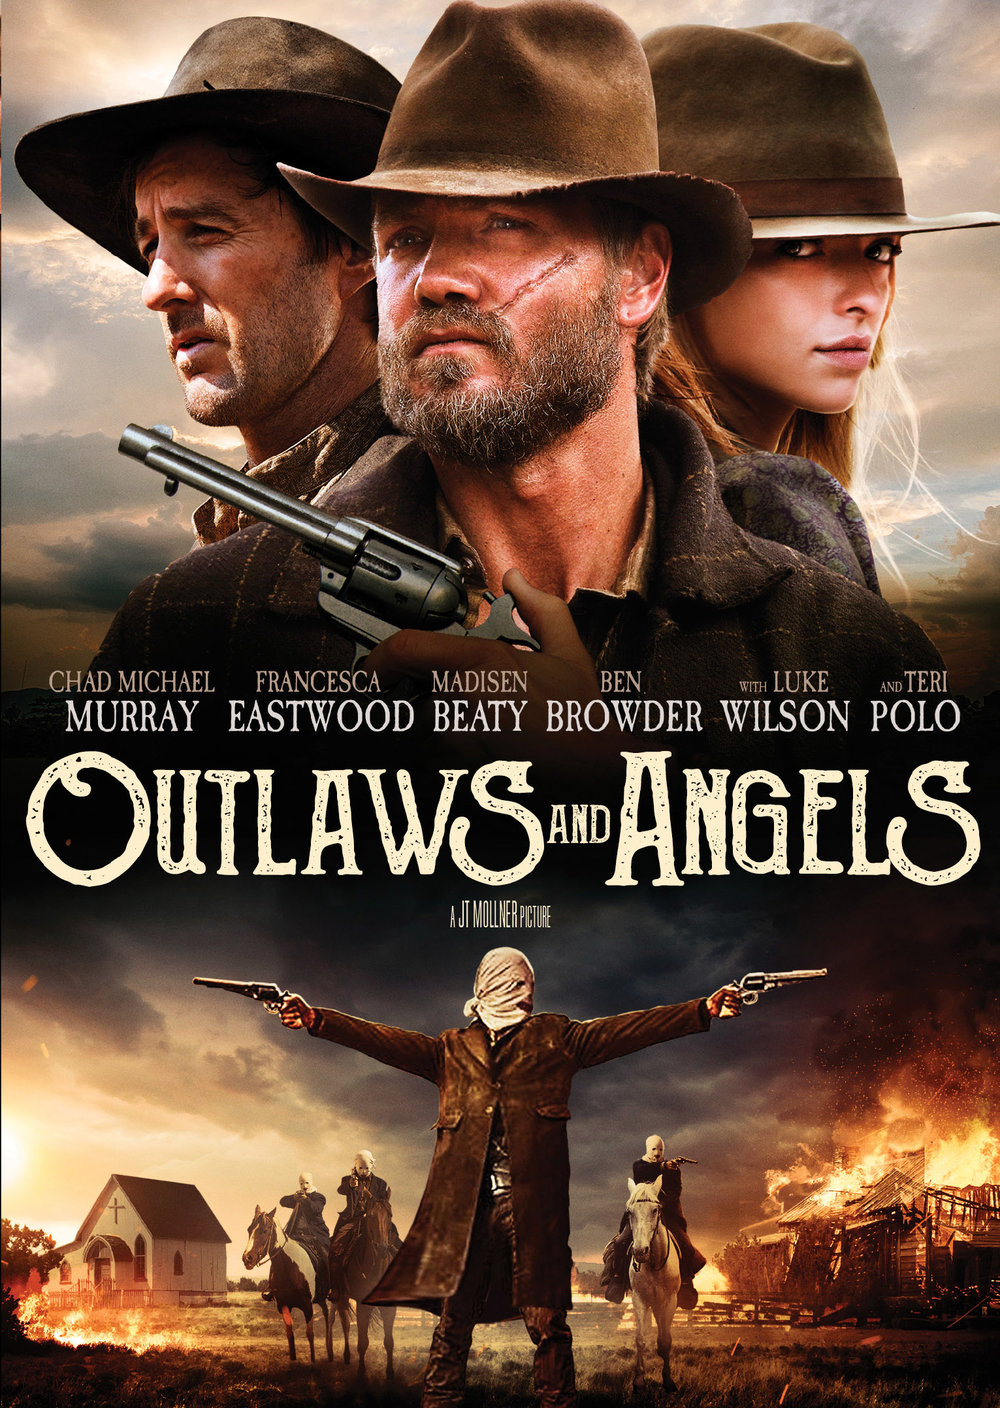 784630_OUTLAWS AND ANGELS [SPHE-ACQ]DVDSTD2D Pack Shot.jpg